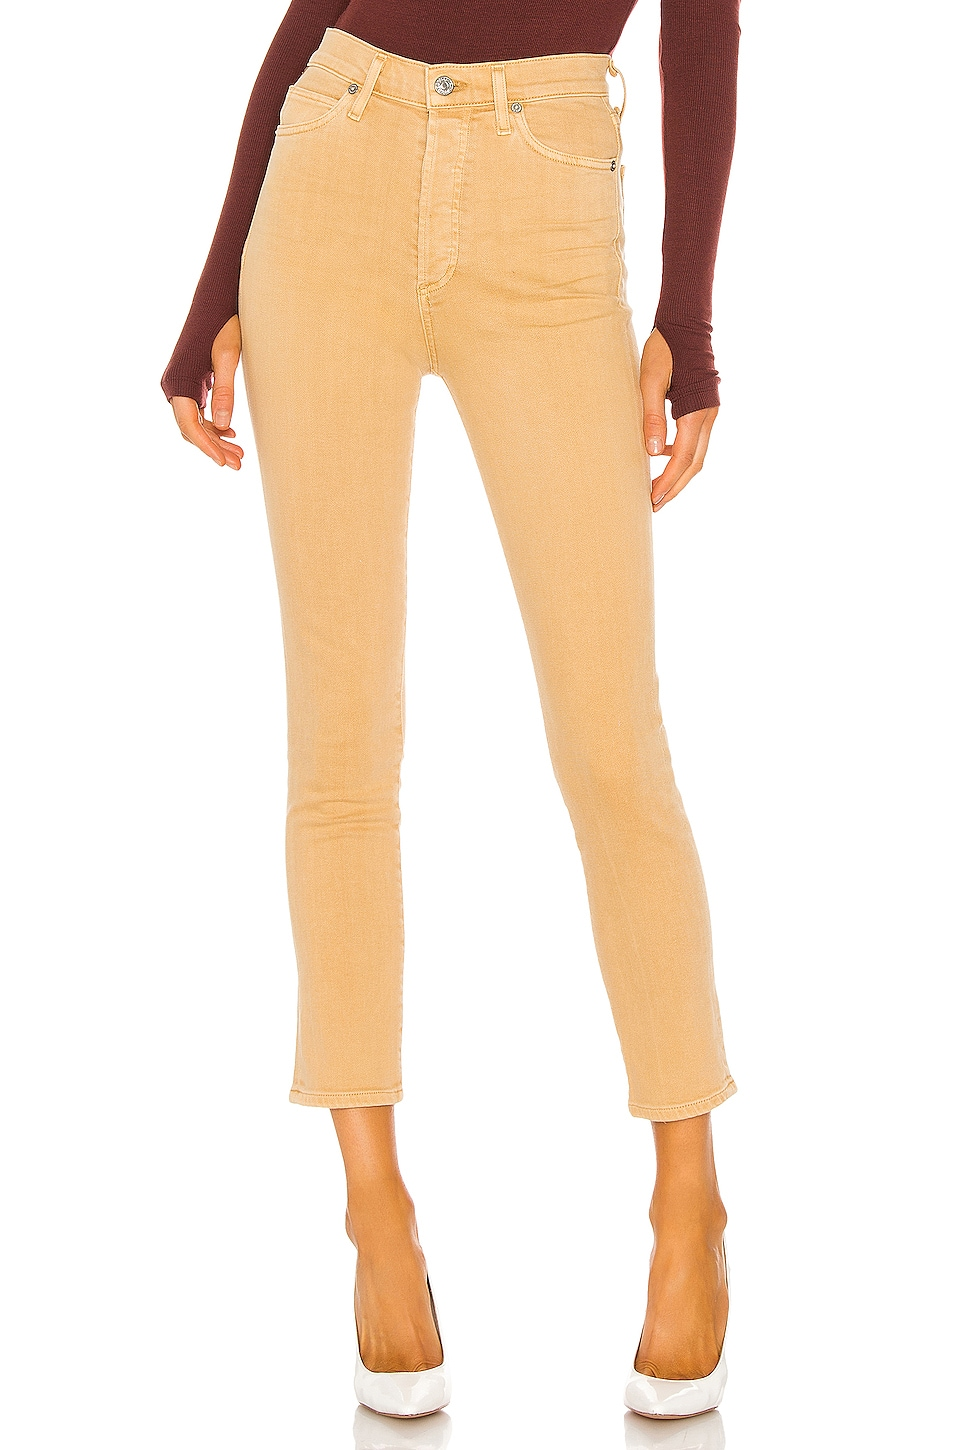 Citizens of Humanity Olivia High Rise Slim in Golden Rod